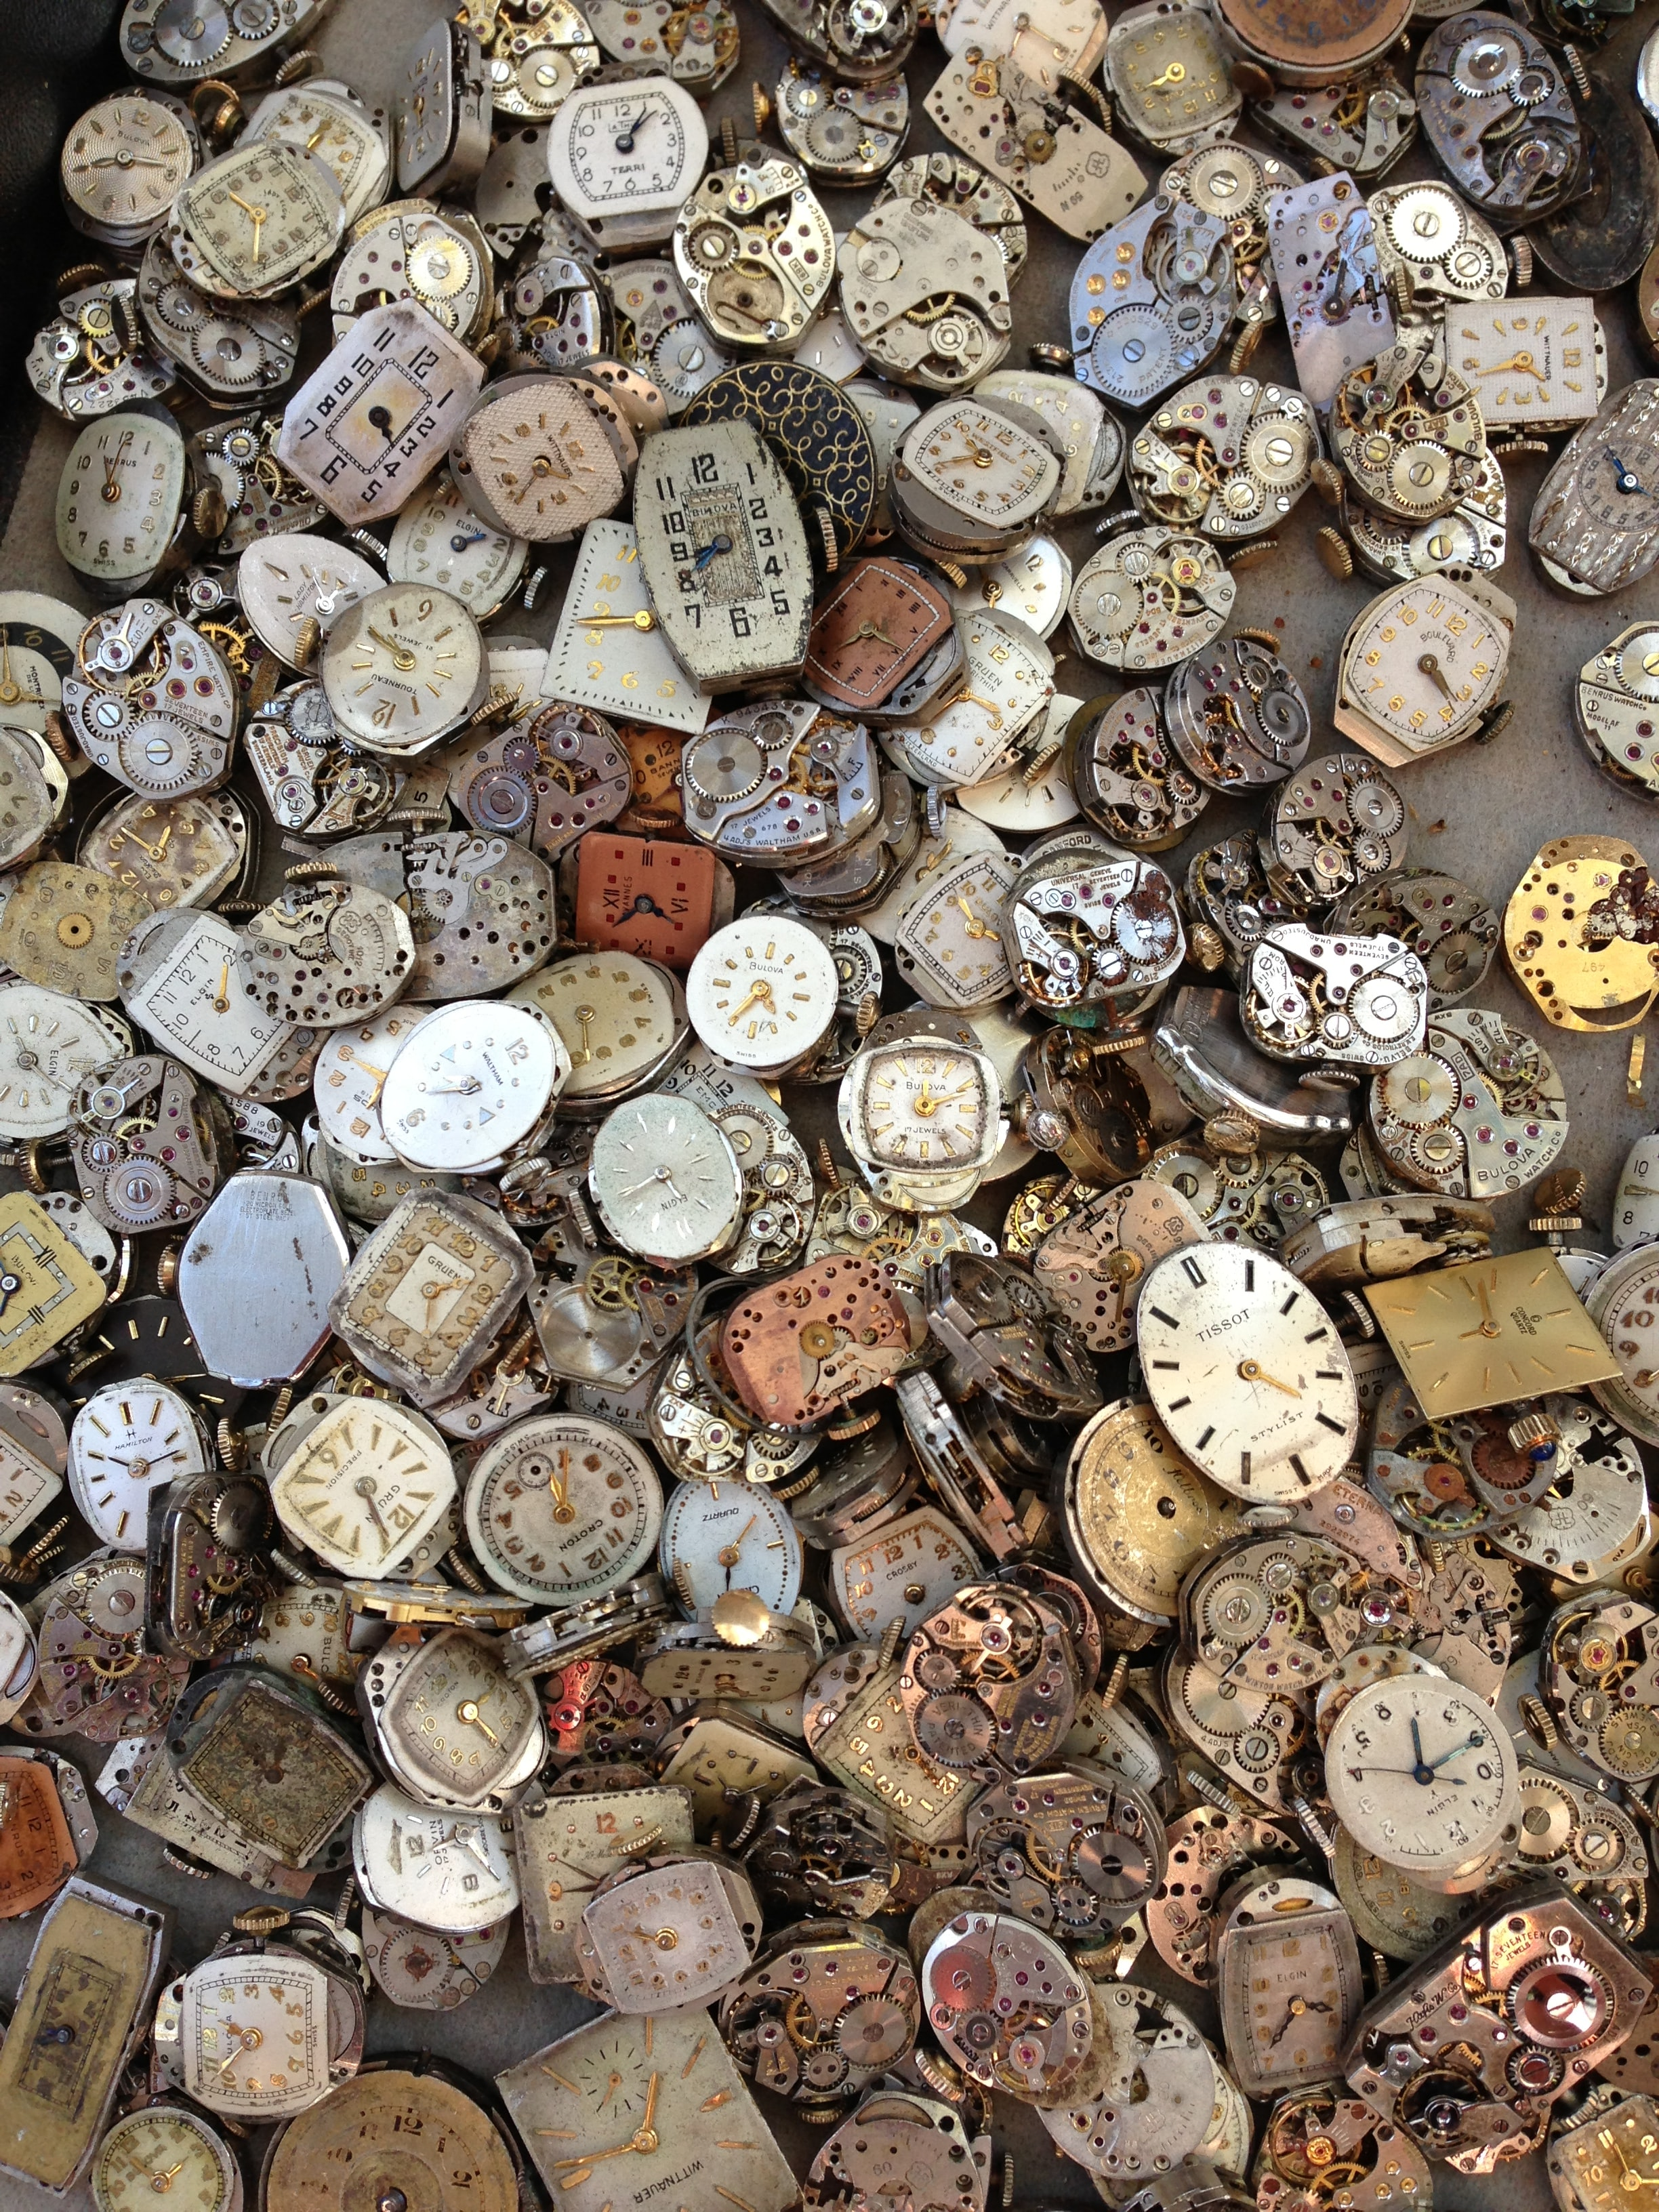 A large heap of broken antique watches and clocks